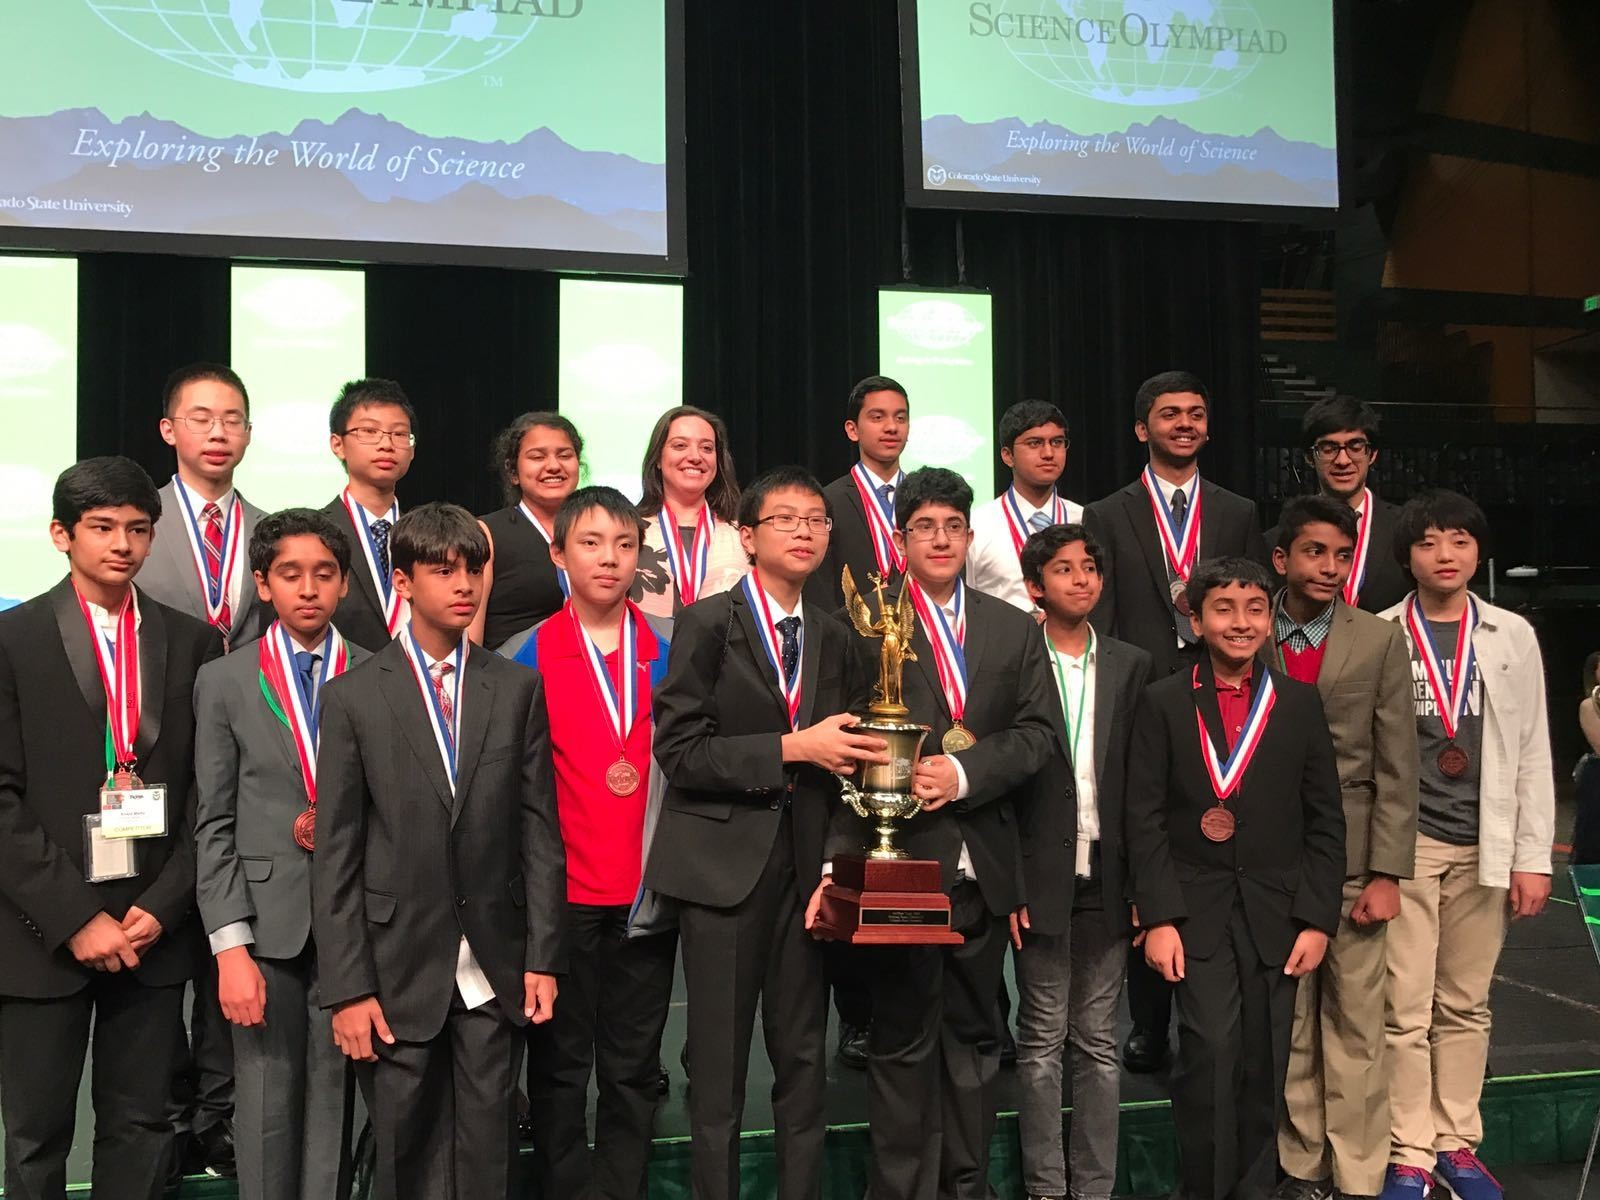 Science Olympians triumph at national competition - nj com